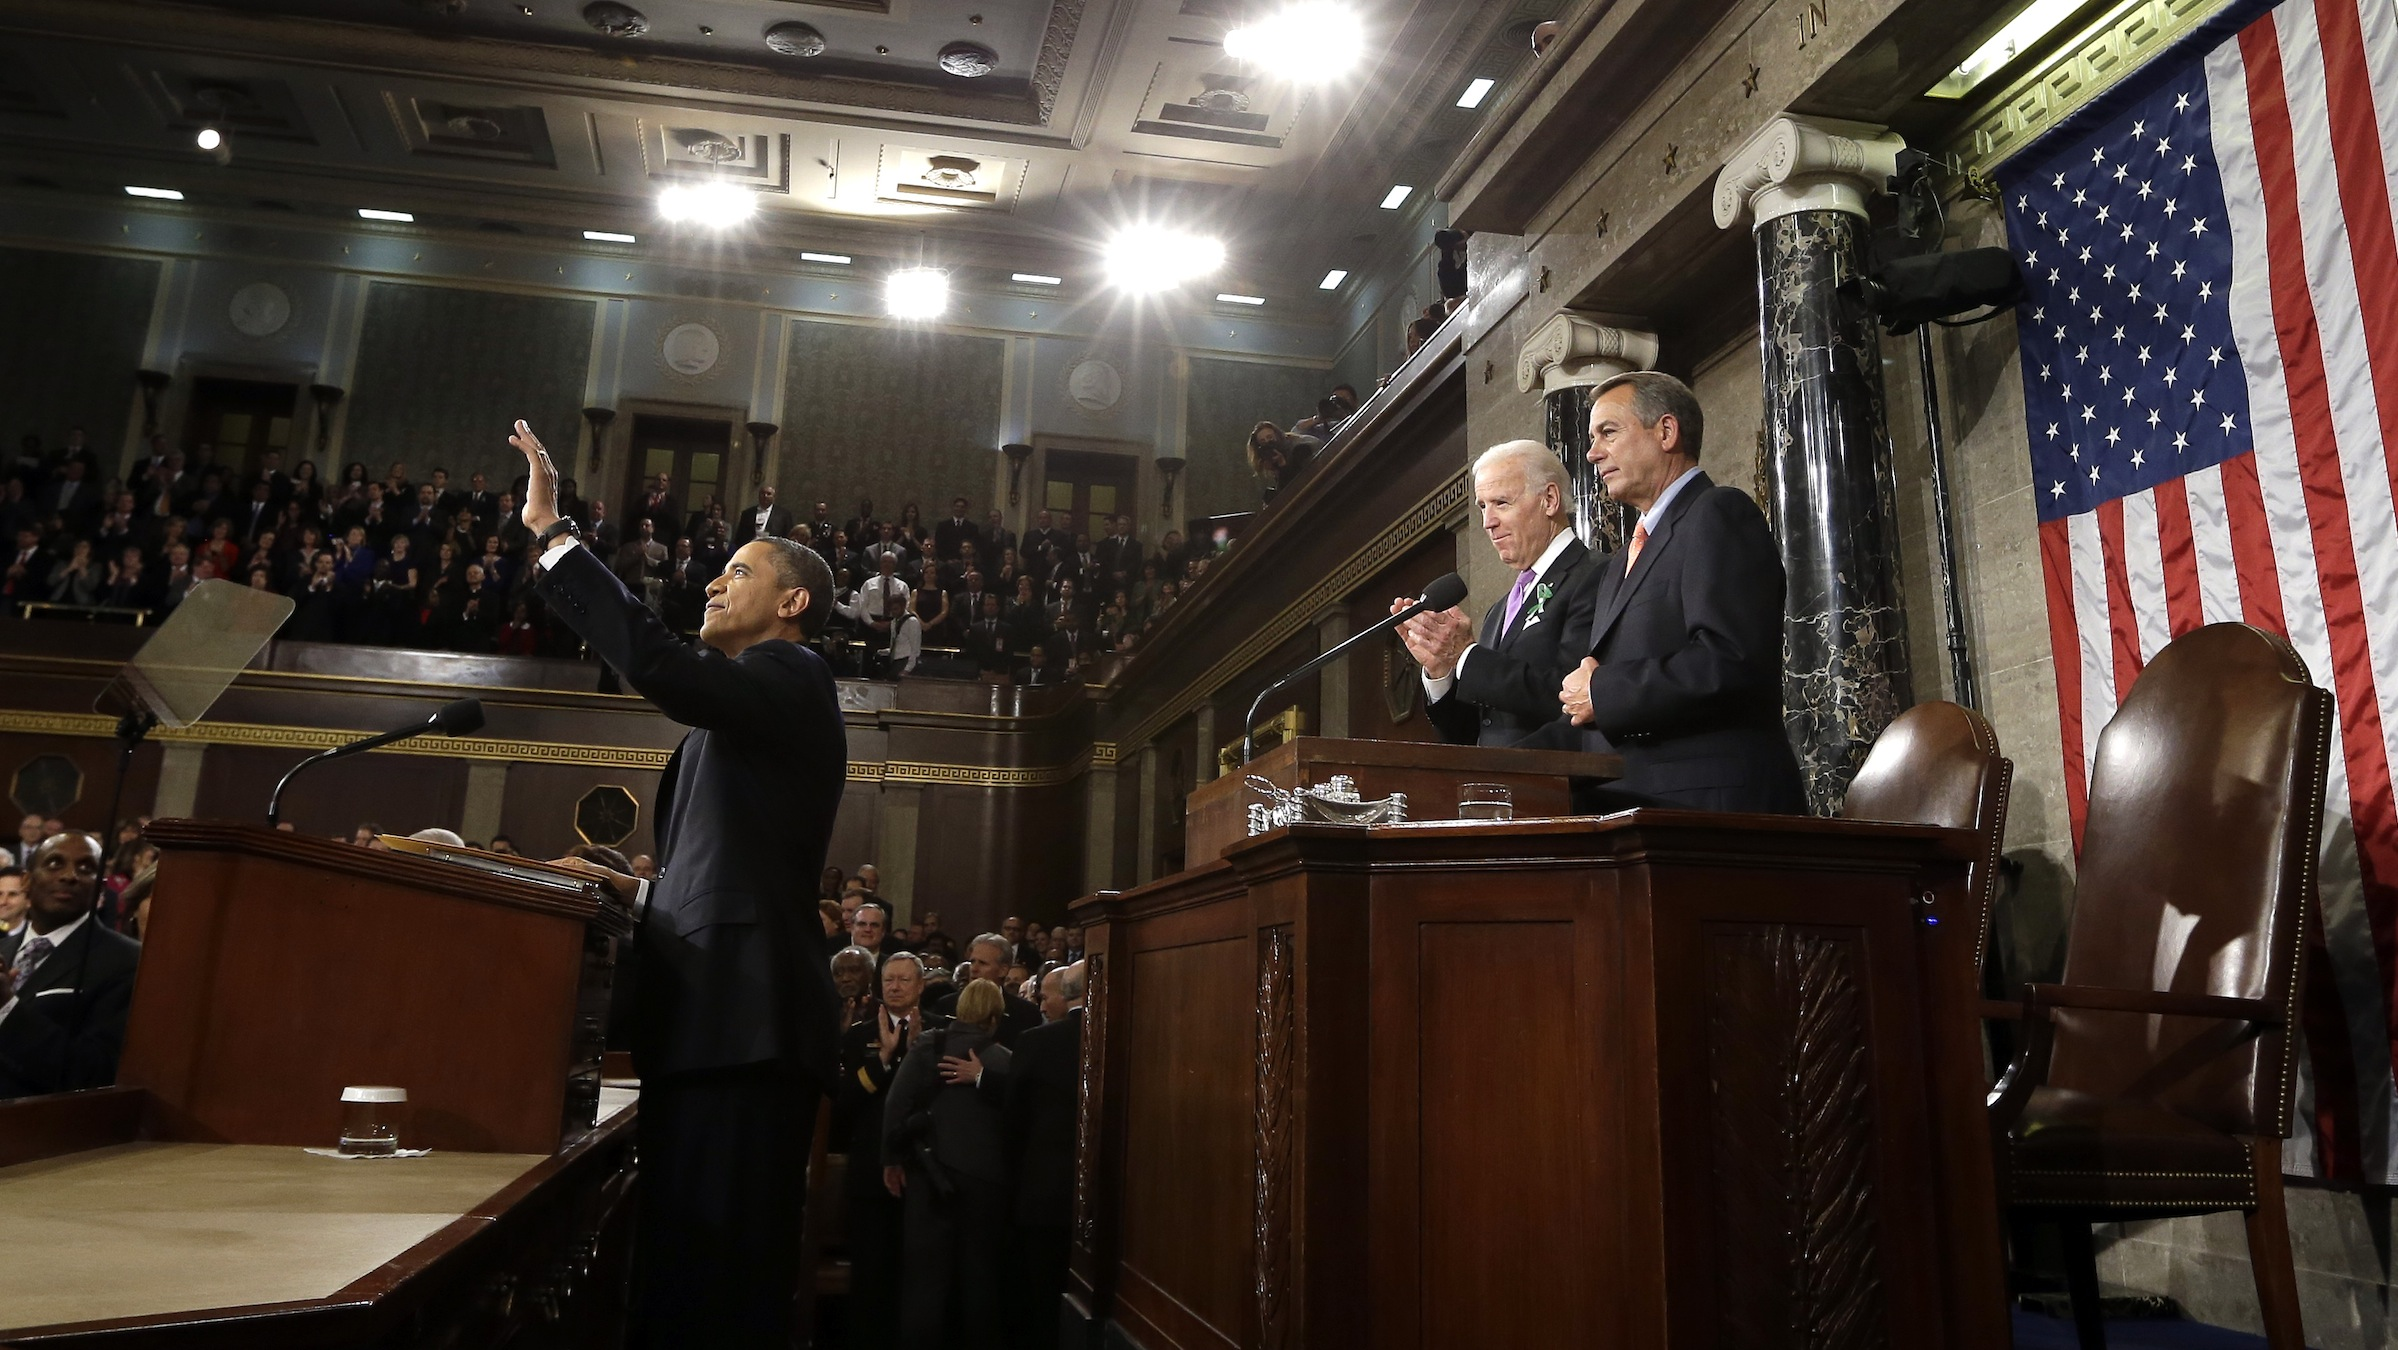 President Barack Obama before giving the 2013 State of the Union.